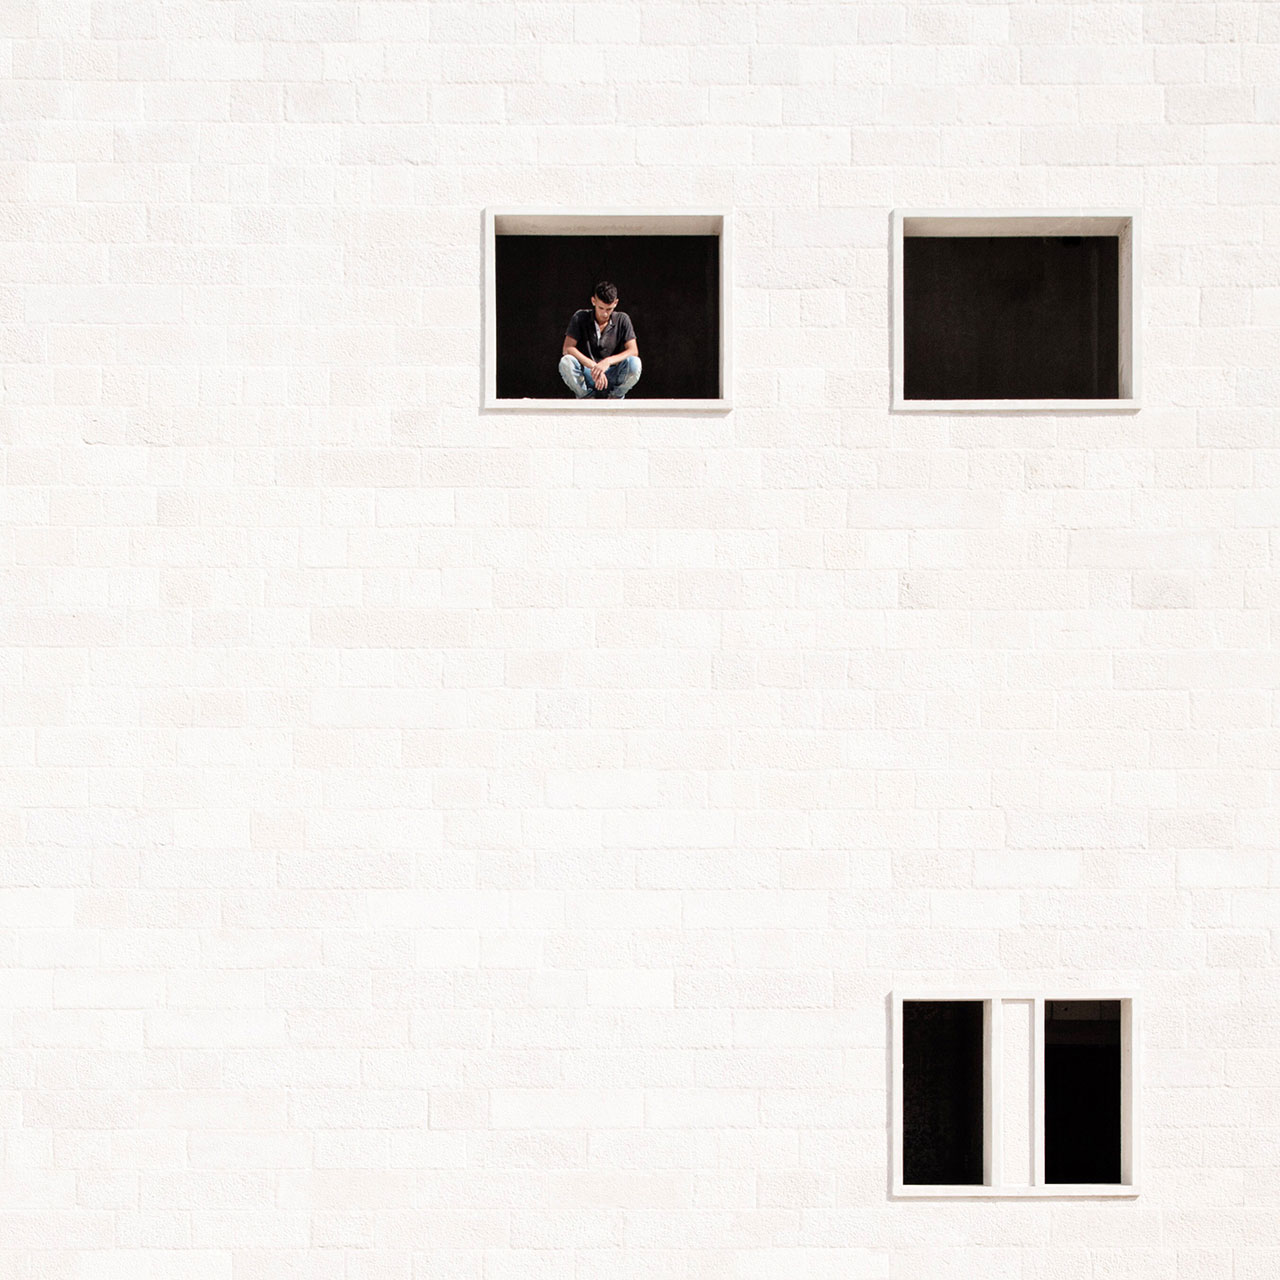 Meditation, photo © Serge Najjar.